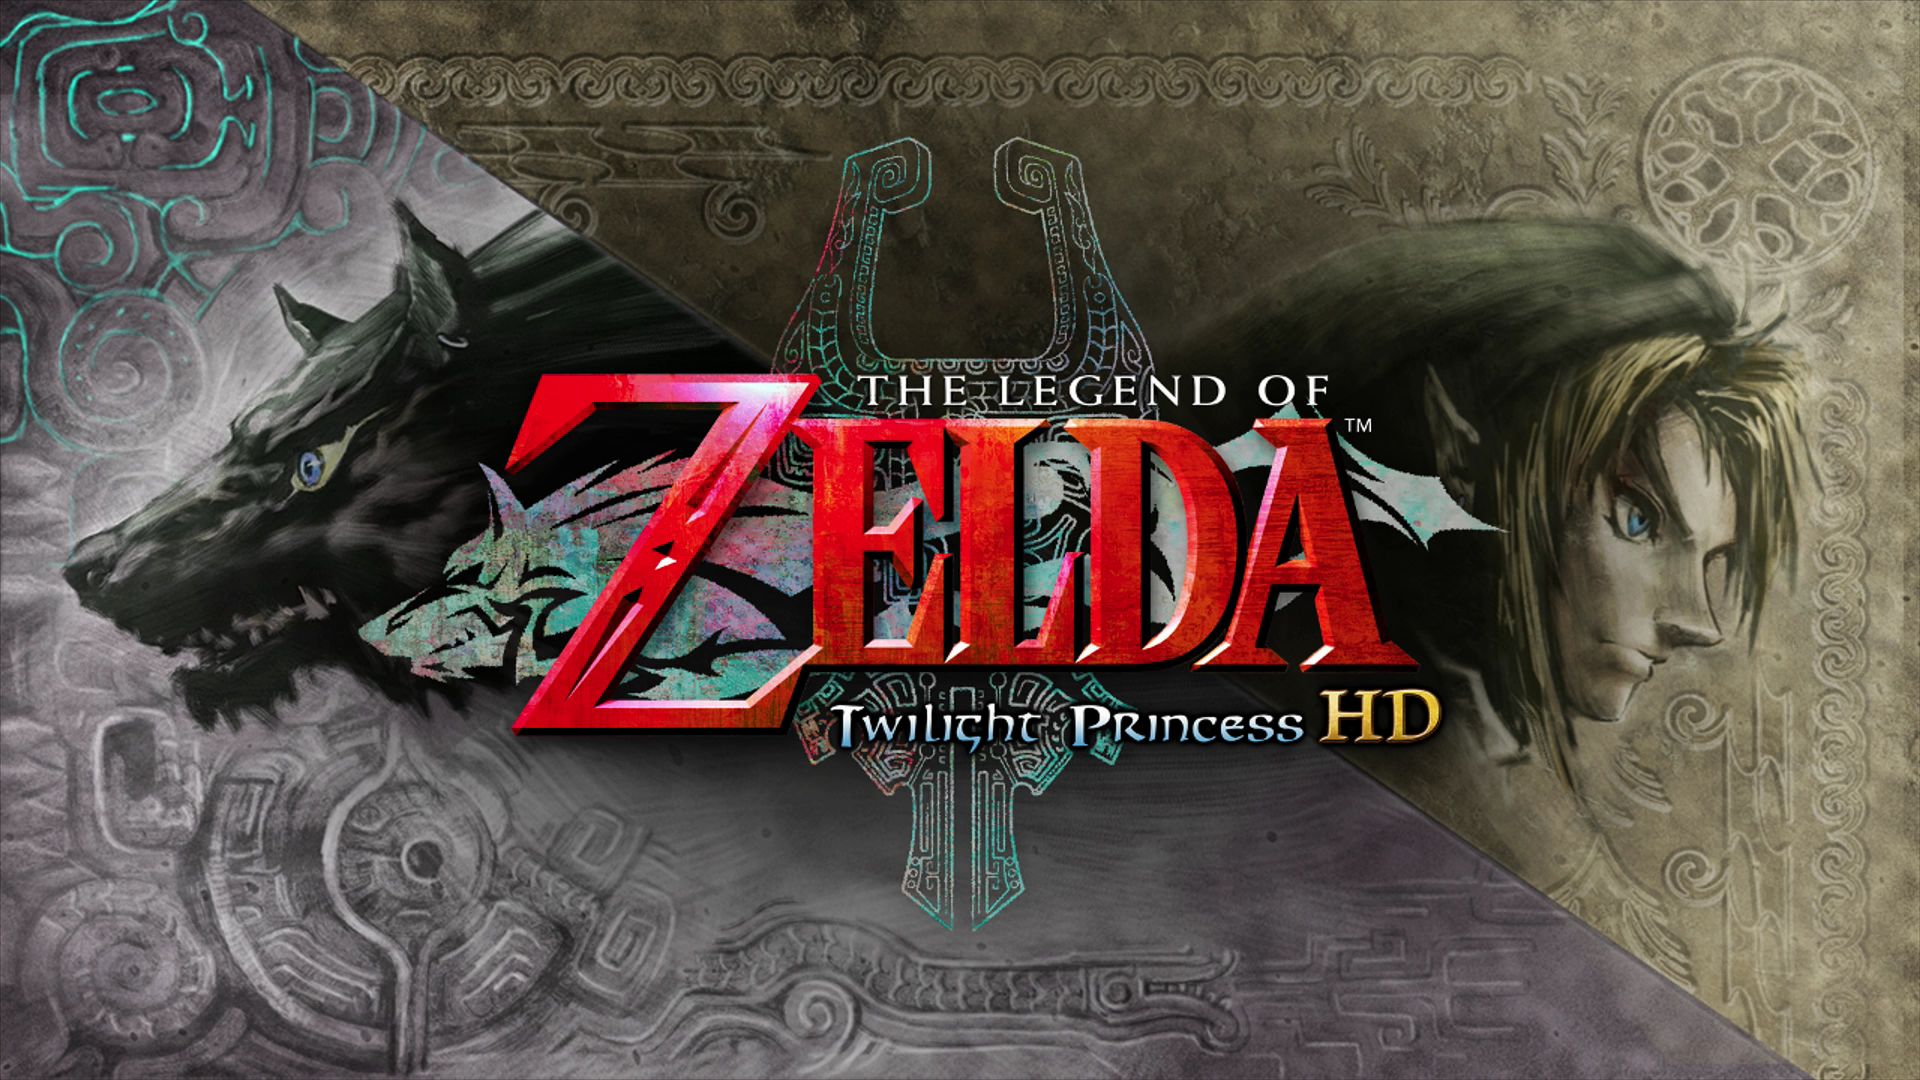 the legend of zelda twilight princess hd artikelbild